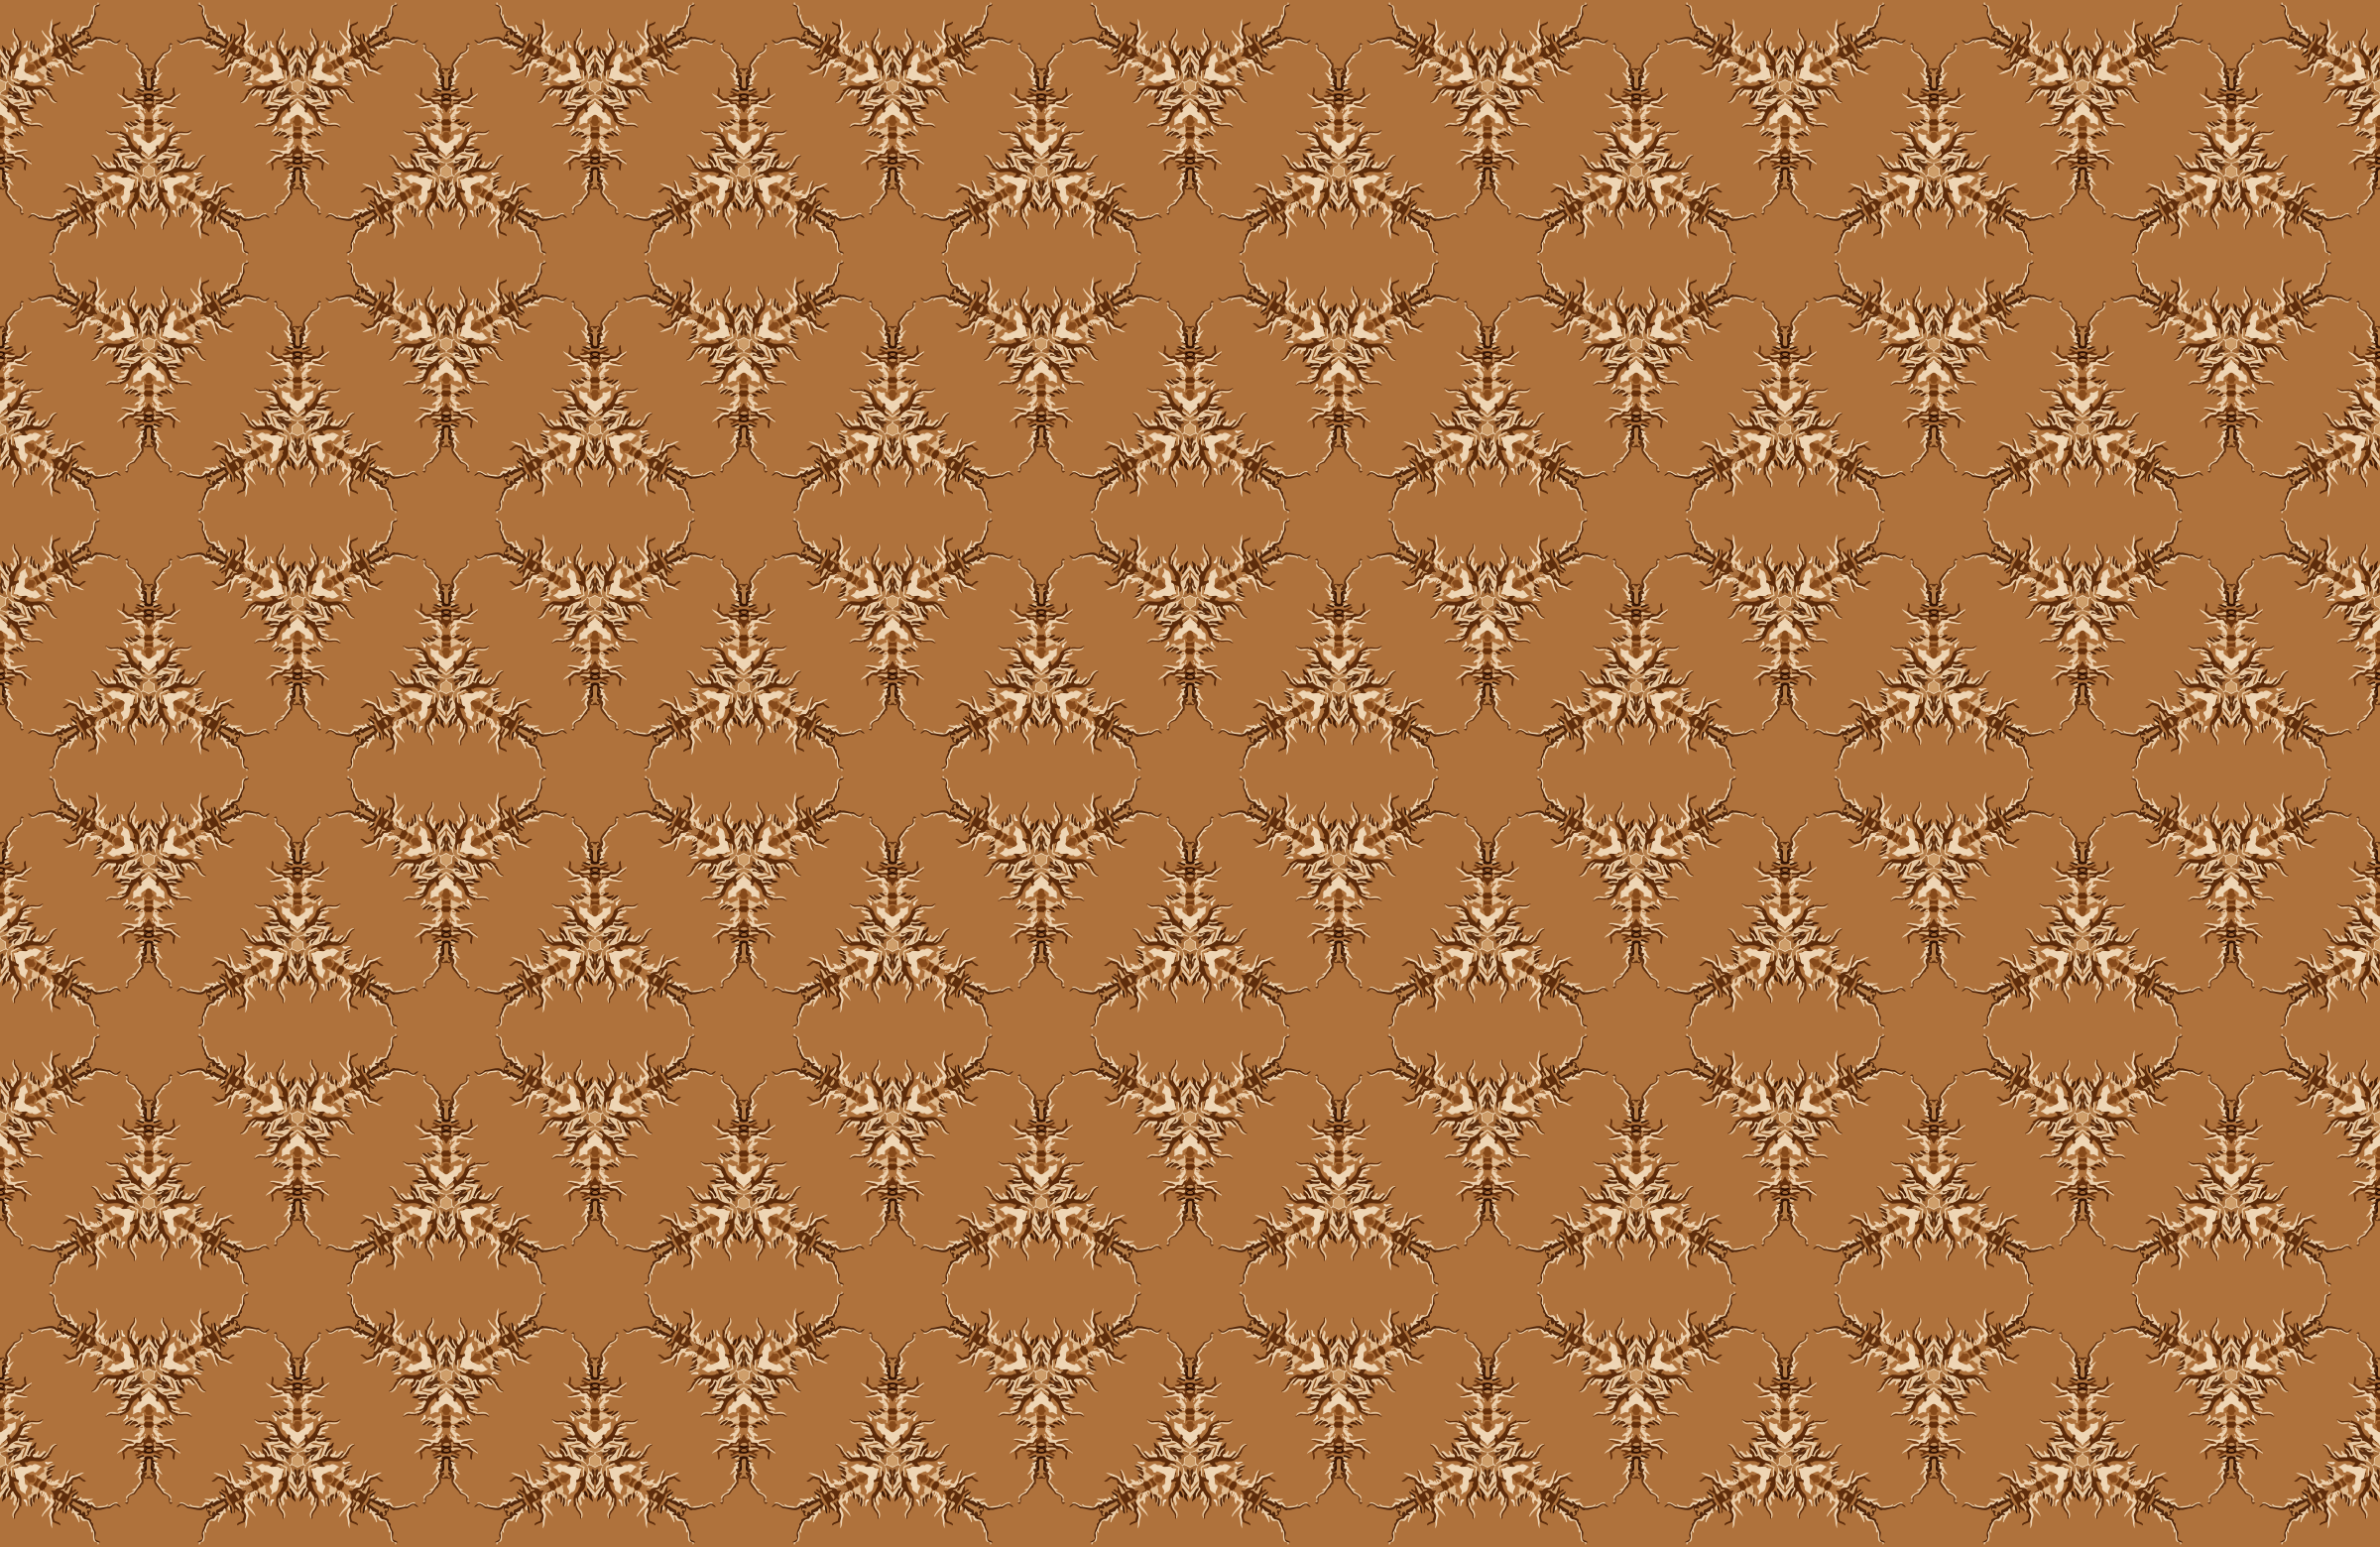 Background pattern 88 by Firkin